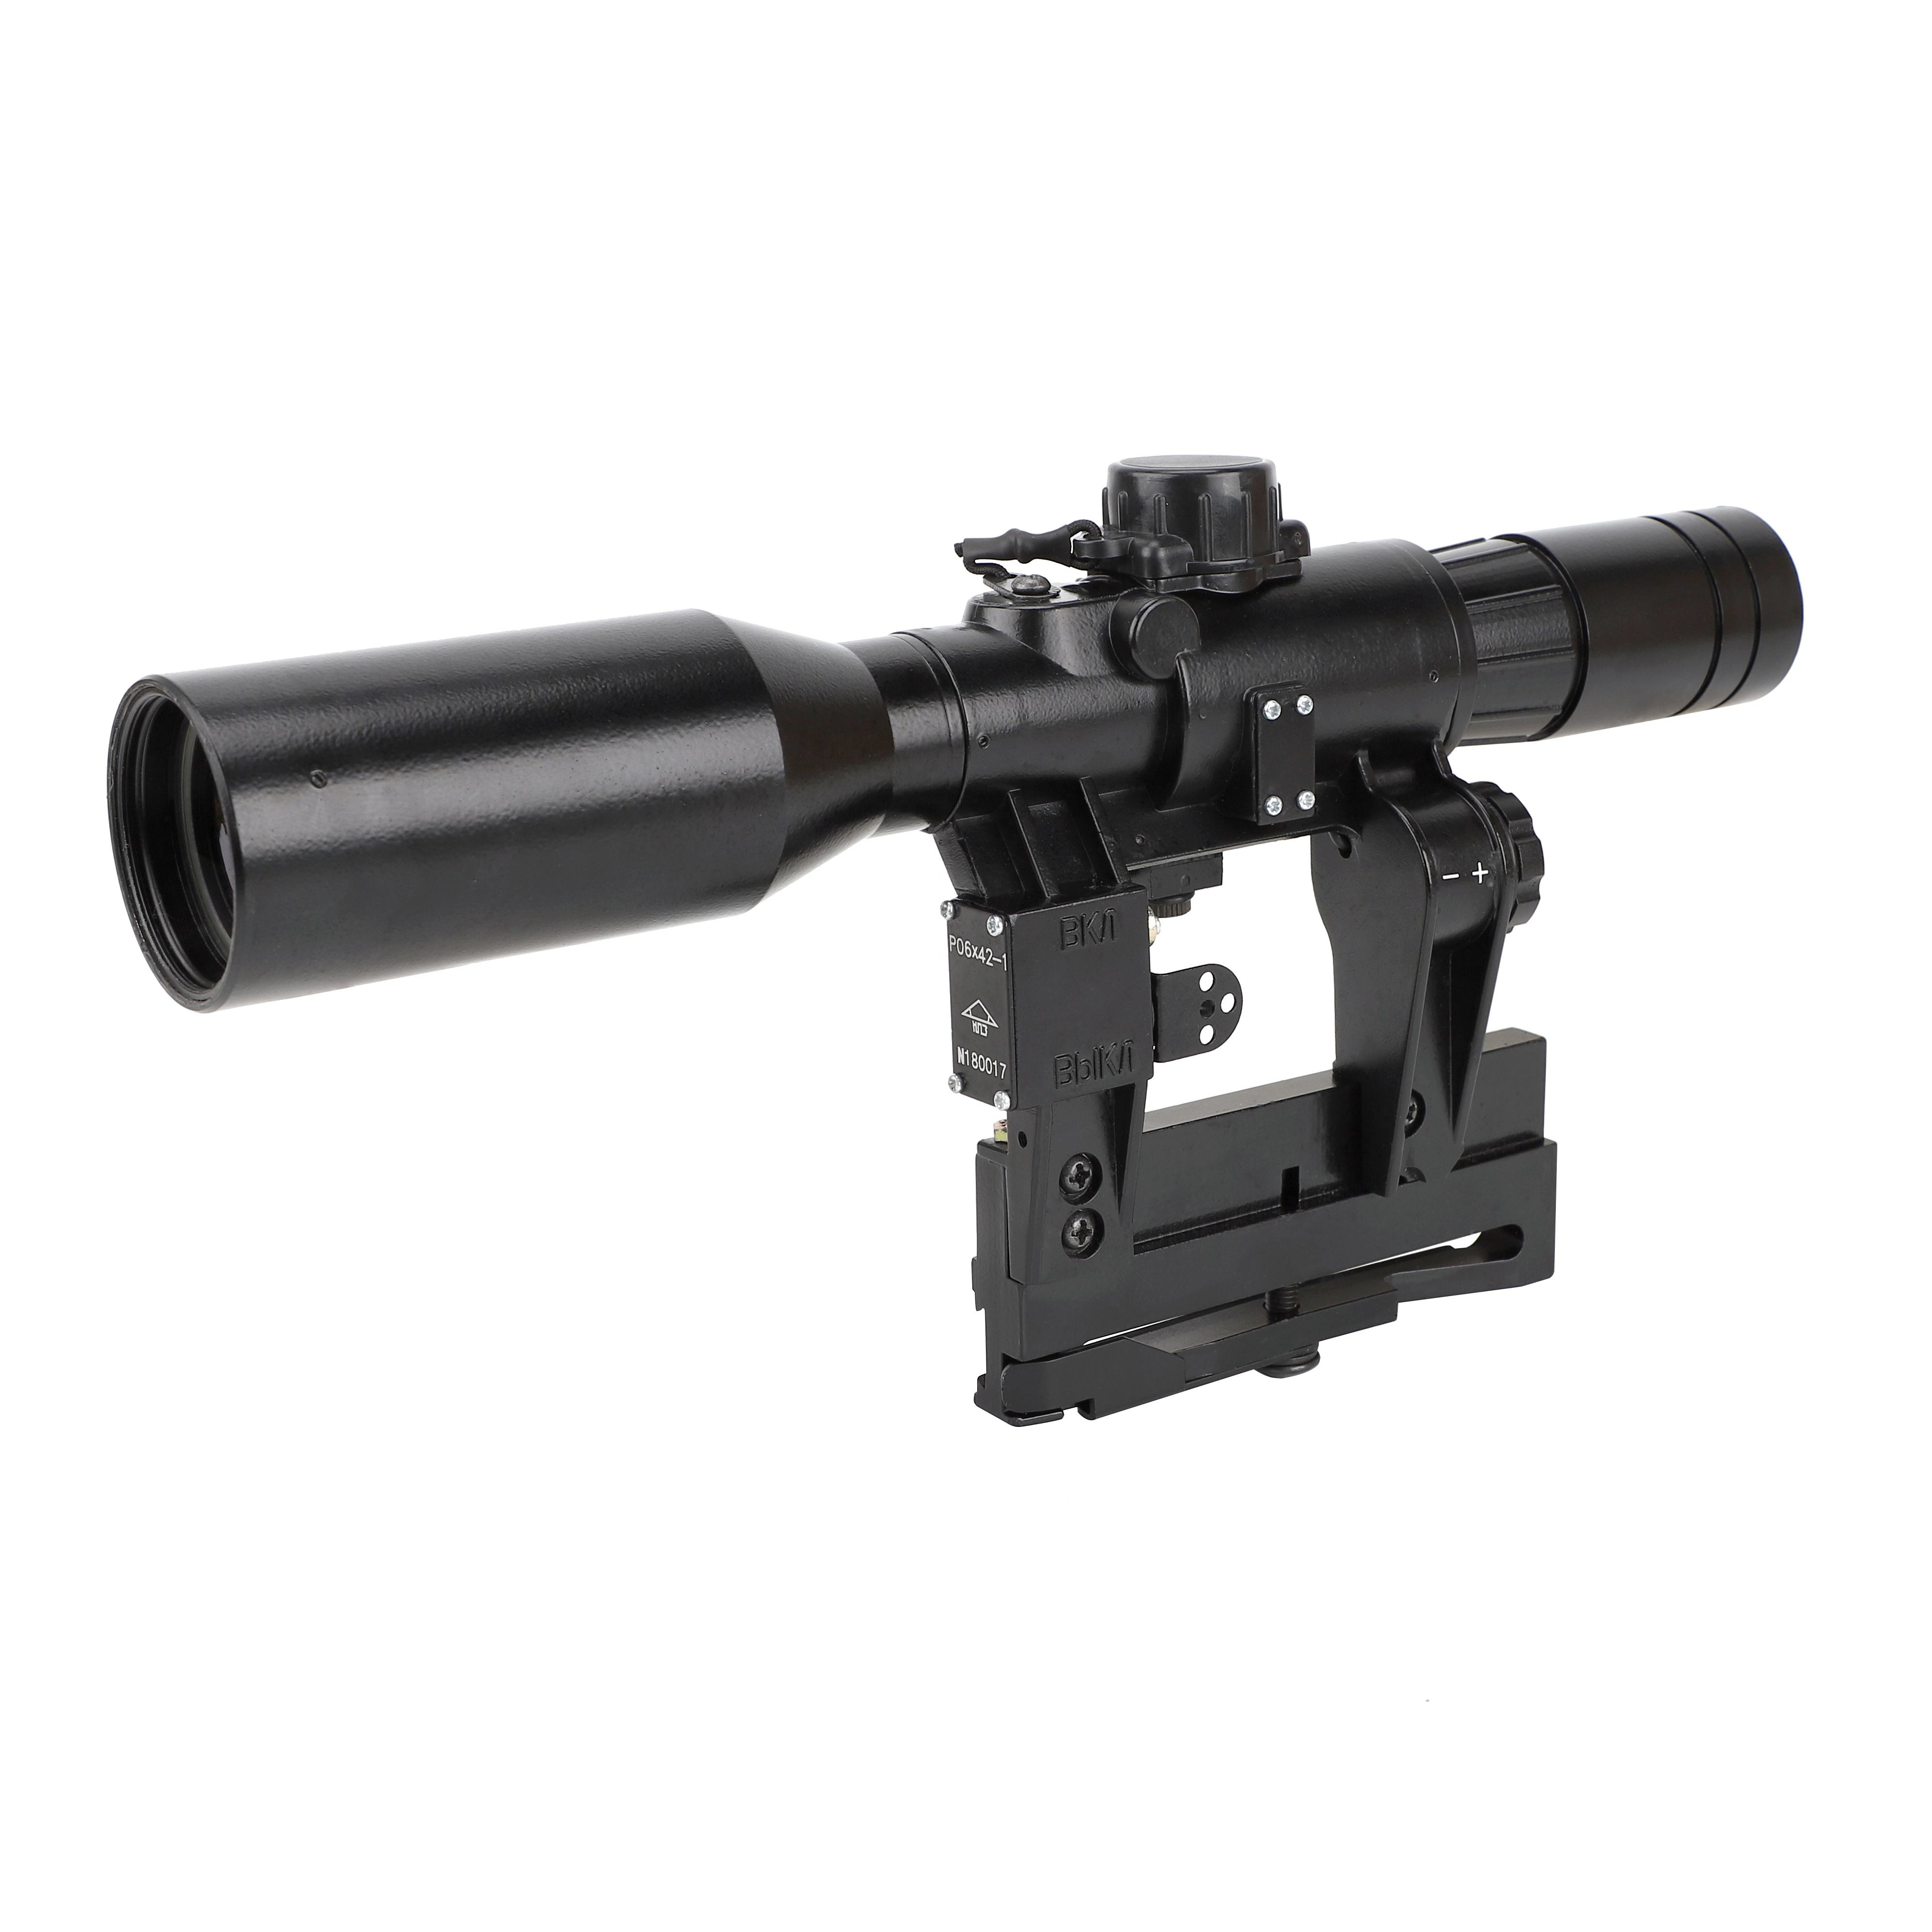 Ohhunt SVD <span class=keywords><strong>POS</strong></span> 6X42 Caccia Cannocchiale Rosso <span class=keywords><strong>di</strong></span> Vetro Acidato Reticolo Tactical Ottica Attrazioni Fucile Style Rail Mount